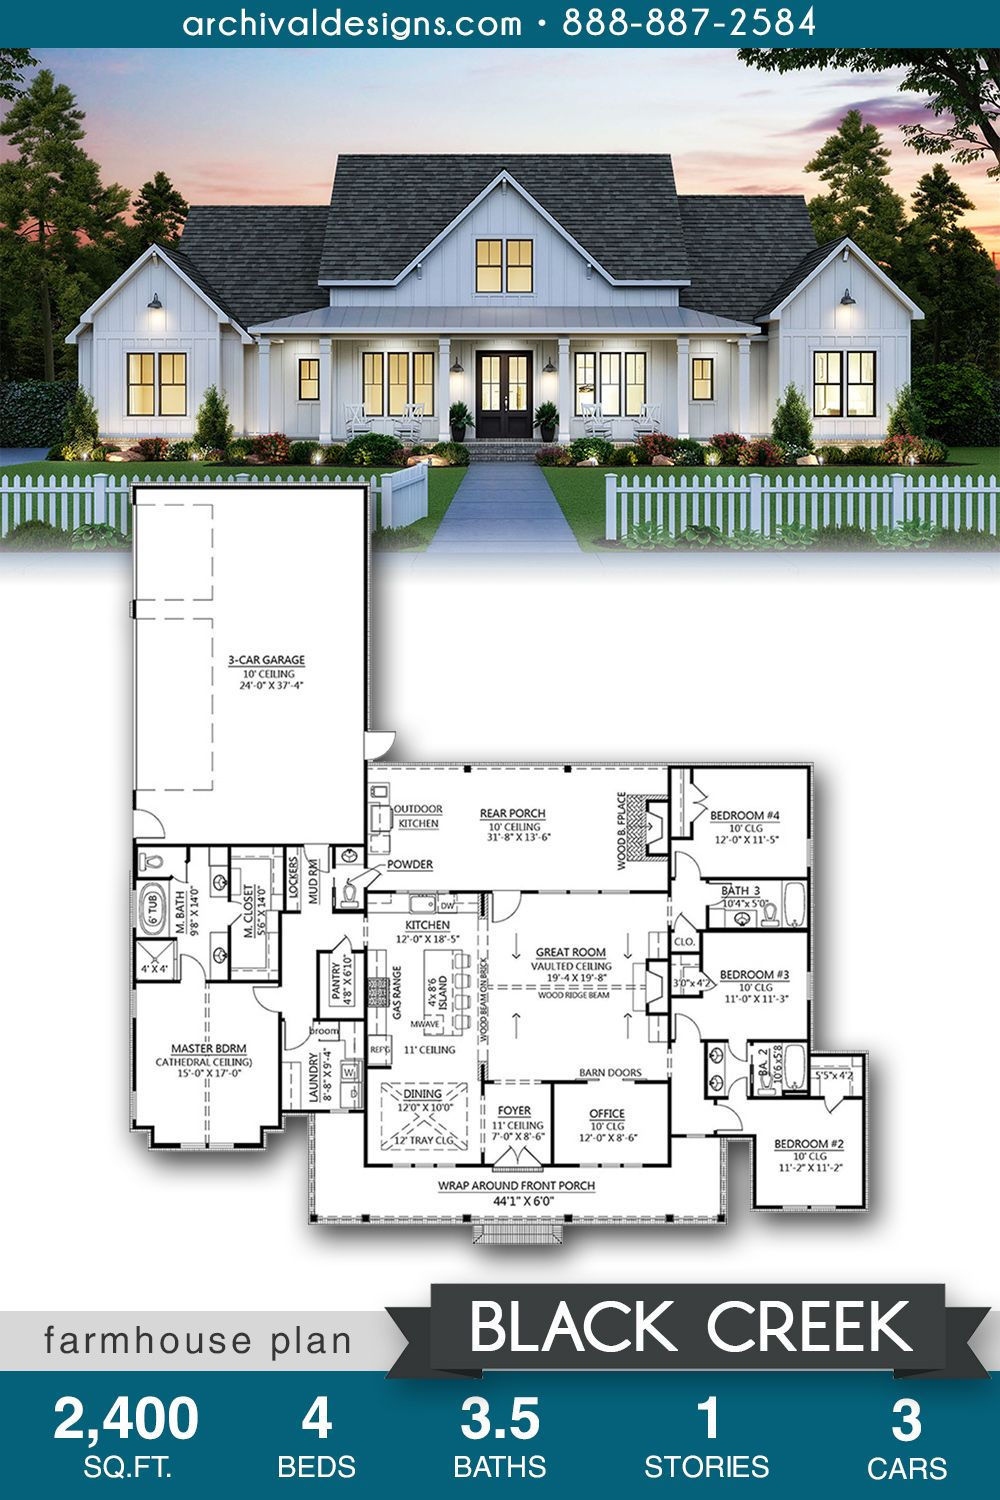 Black Creek House Plan In 2020 House Plans Farmhouse House Plans Family House Plans